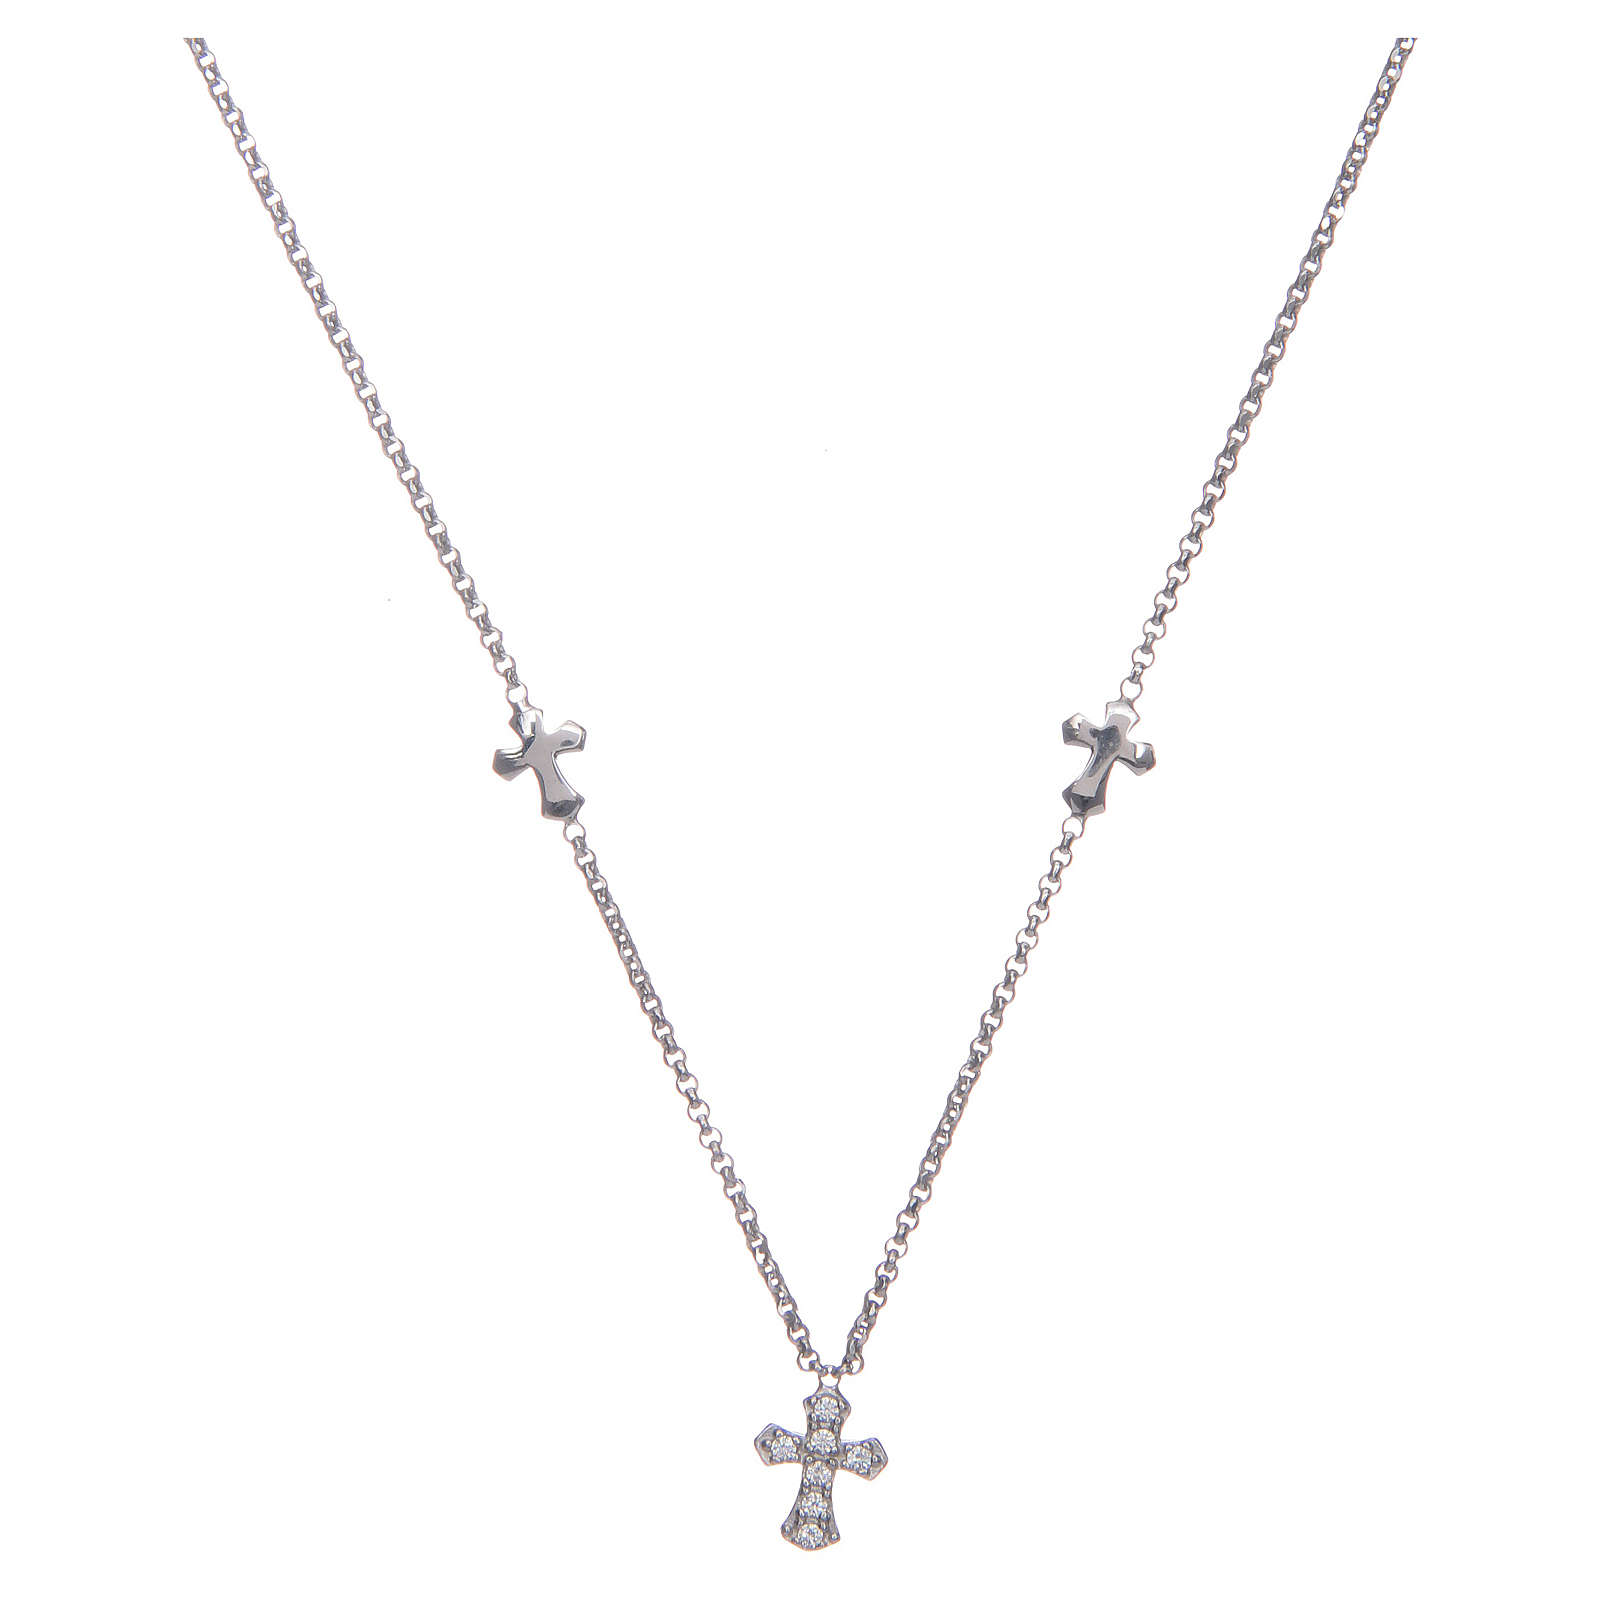 Amen necklace in 925 sterling silver finished in rhodium with crosses 4